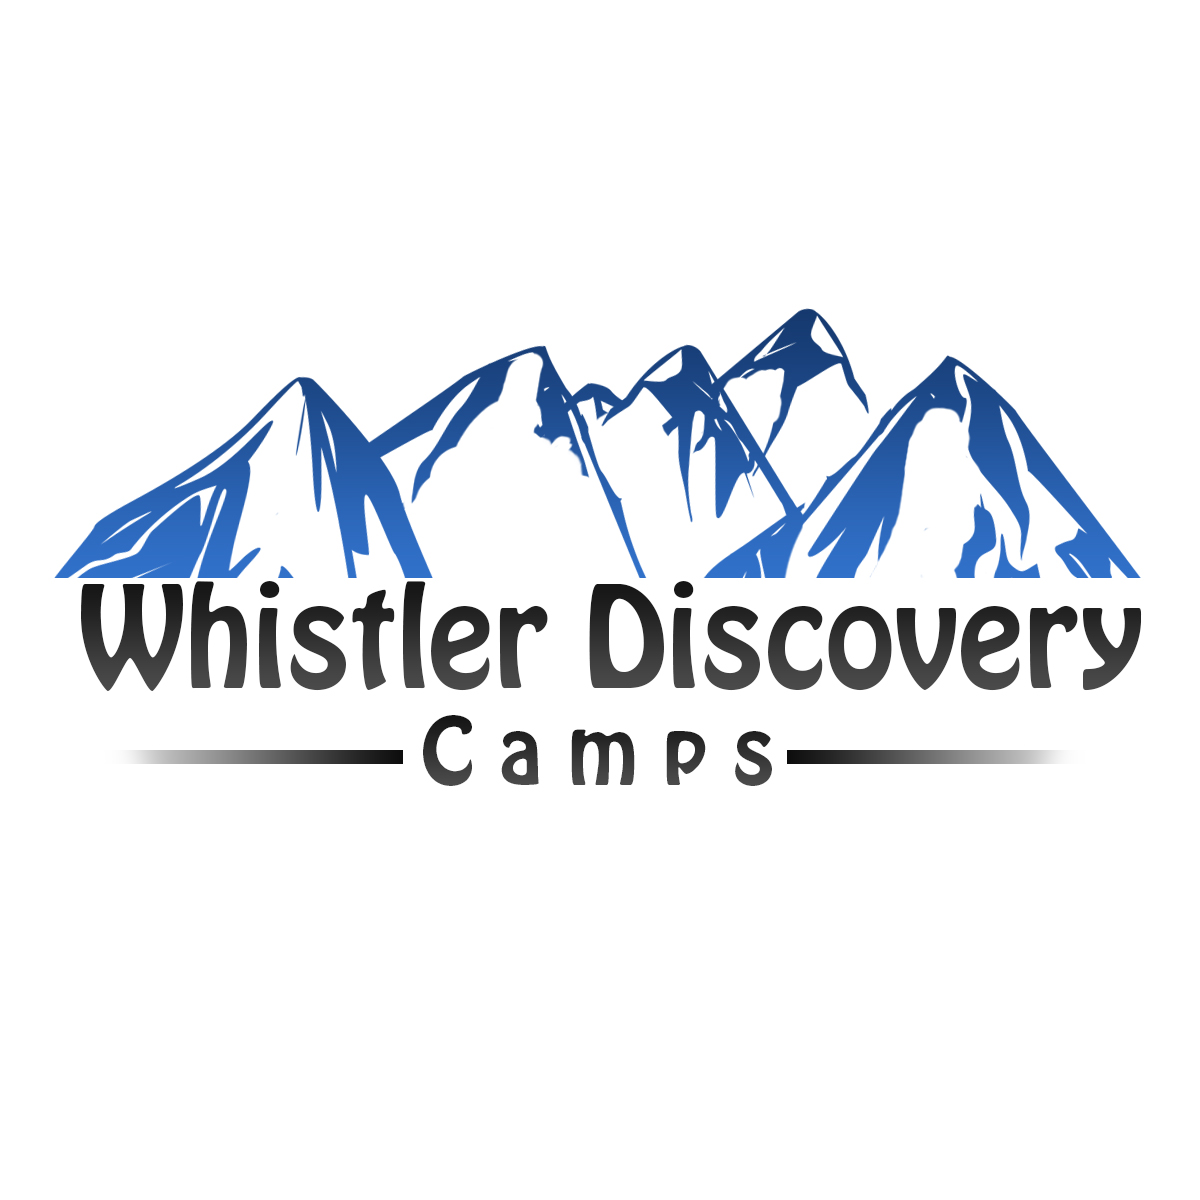 Logo Design by Viral Ramani - Entry No. 44 in the Logo Design Contest Captivating Logo Design for Whistler Discovery Camps.